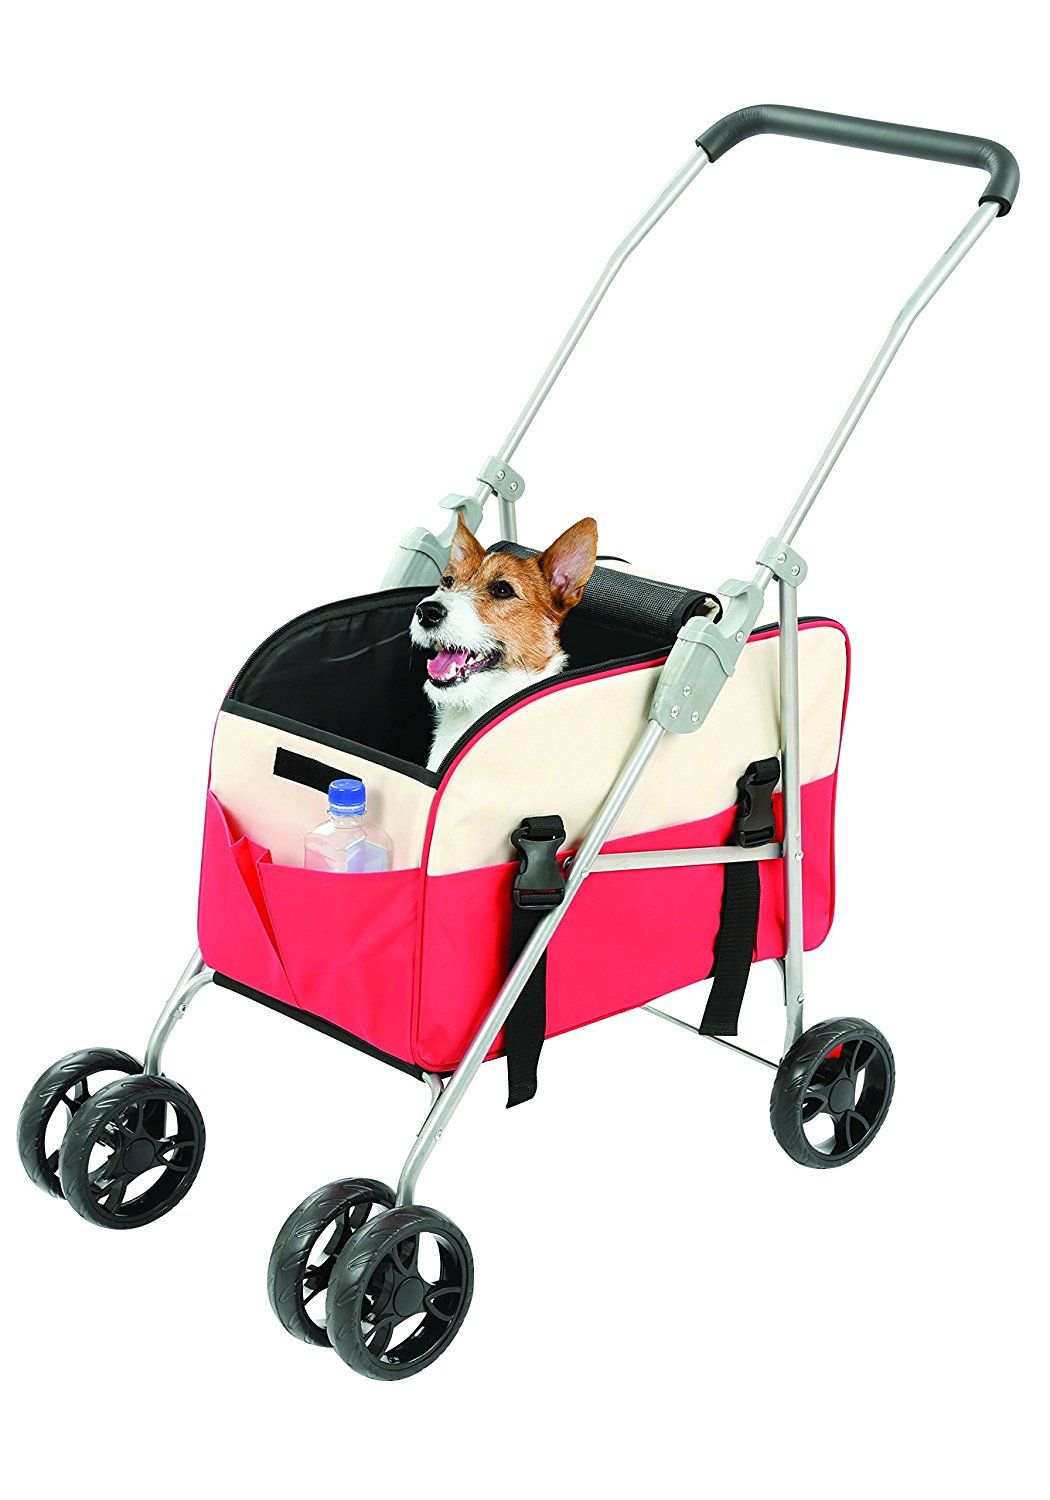 3in1 Pet Stroller, Carrier and Car Seat Red and Tan